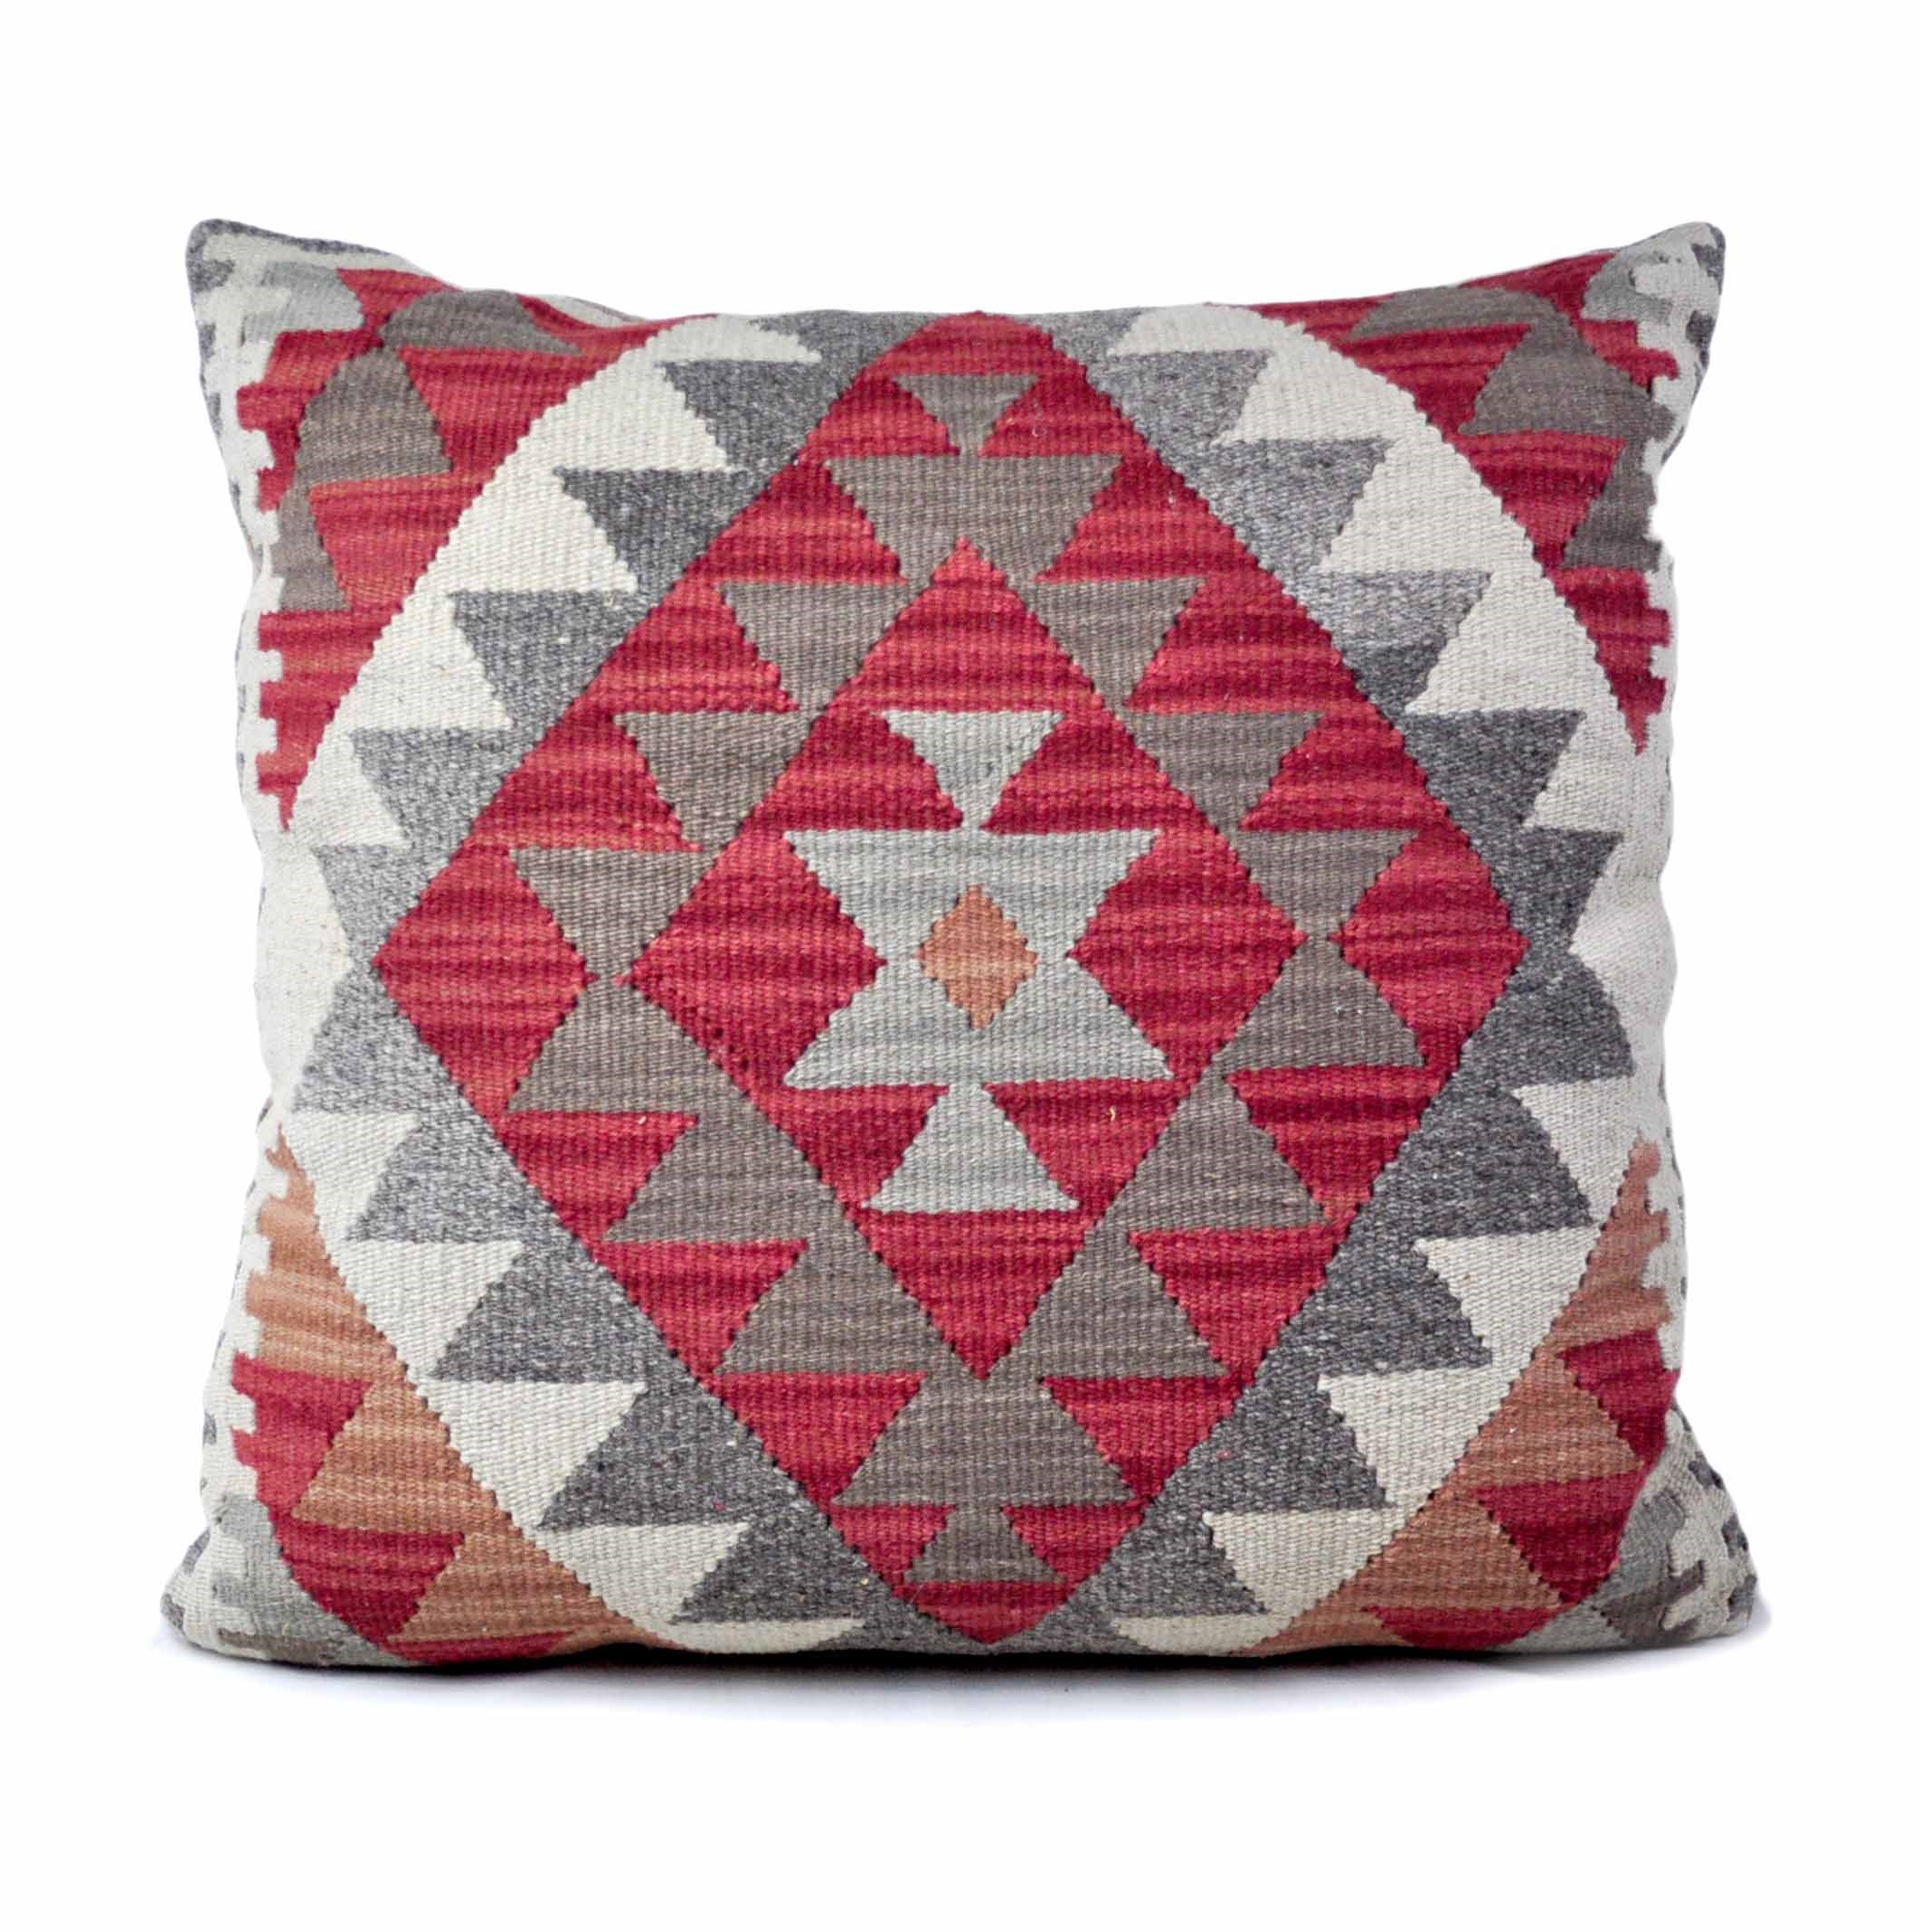 24×24 Hand-woven Wool Kilim Pillow Cover 12981037